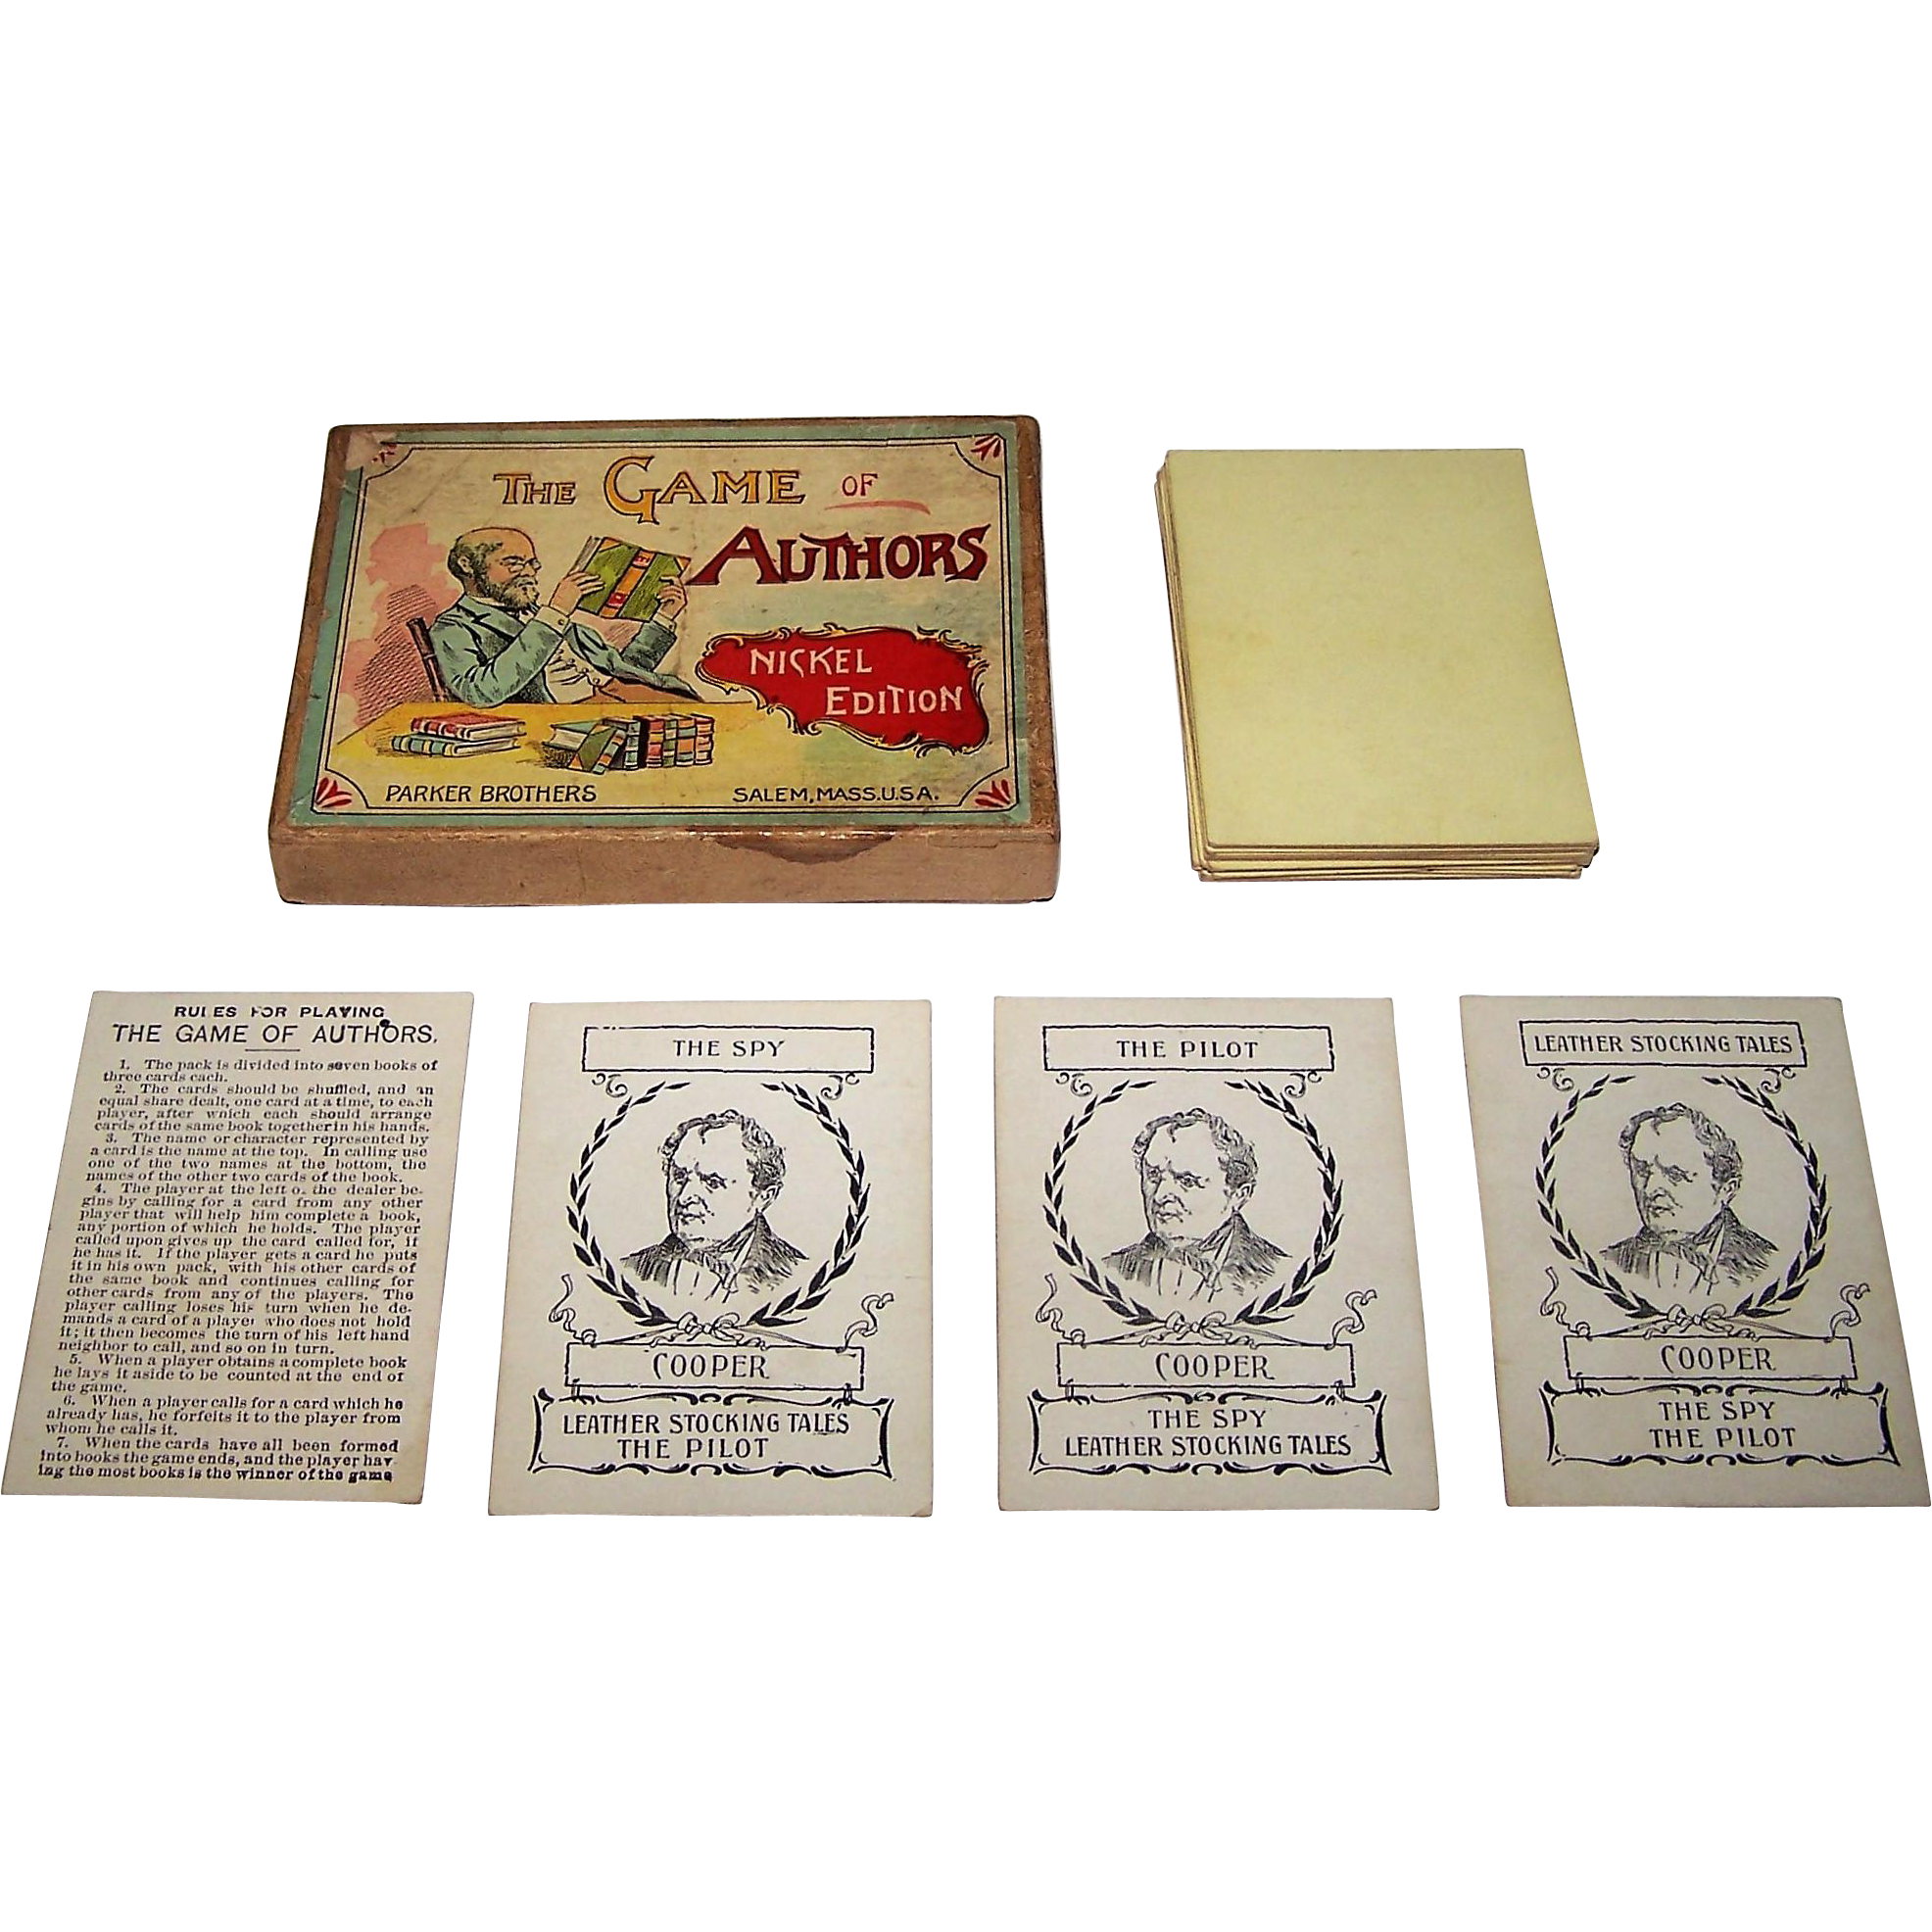 """Parker Brothers """"The Game of Authors"""" Card Game, Nickel Edition, c.1896"""